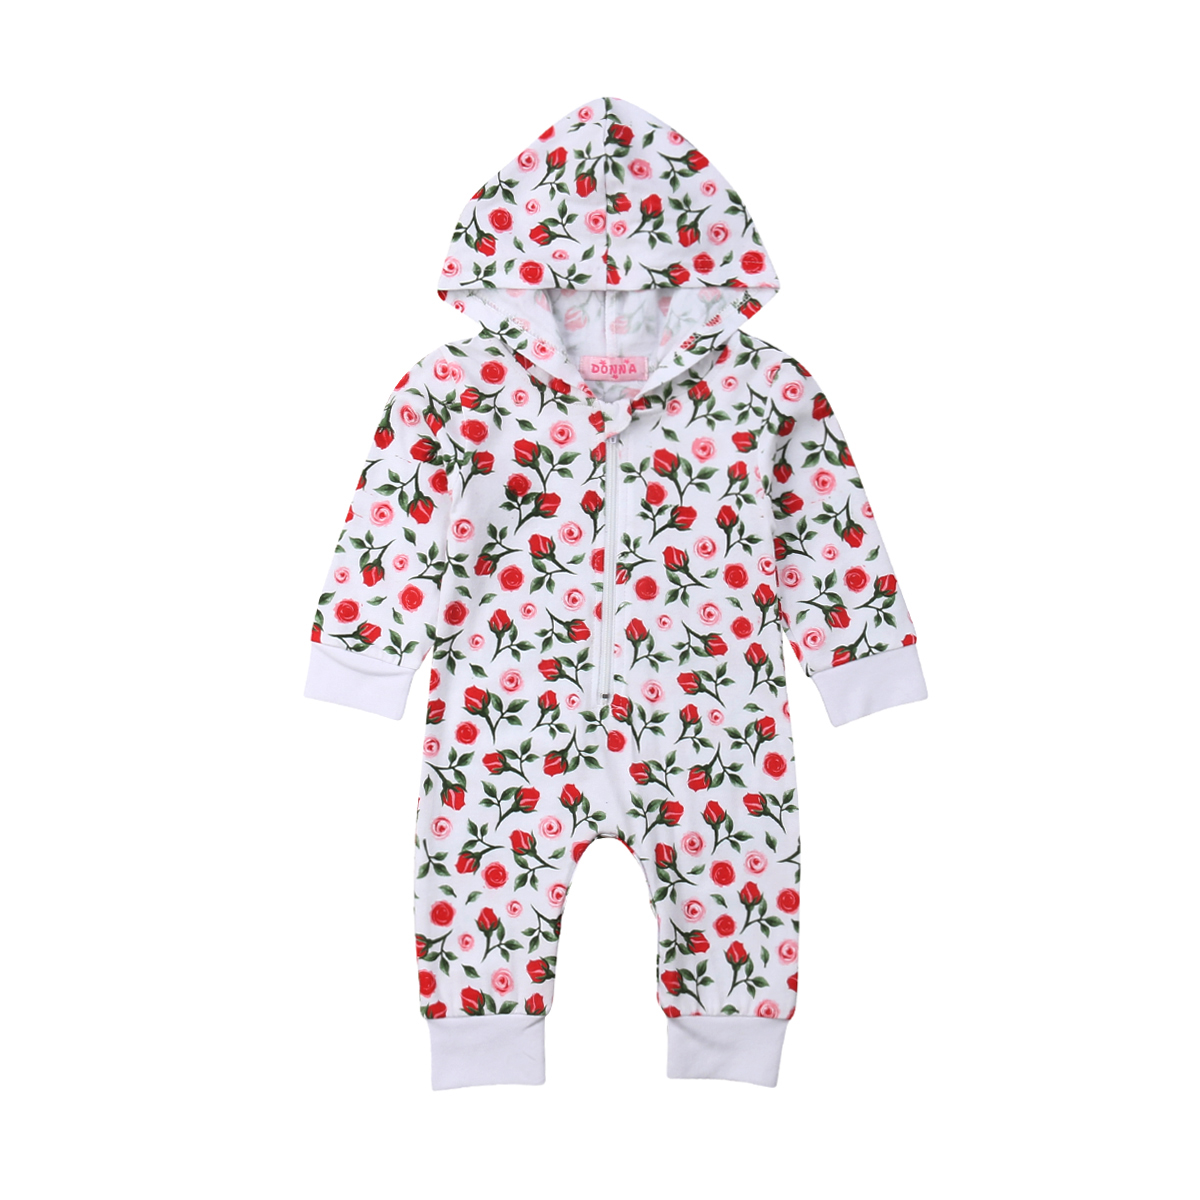 0-18 Mt Infant Neugeborenen Baby Junge Mädchen Lange Sleeve Zipper Mit Kapuze Floral Body Overall Overall Outfits Baby Kleidung